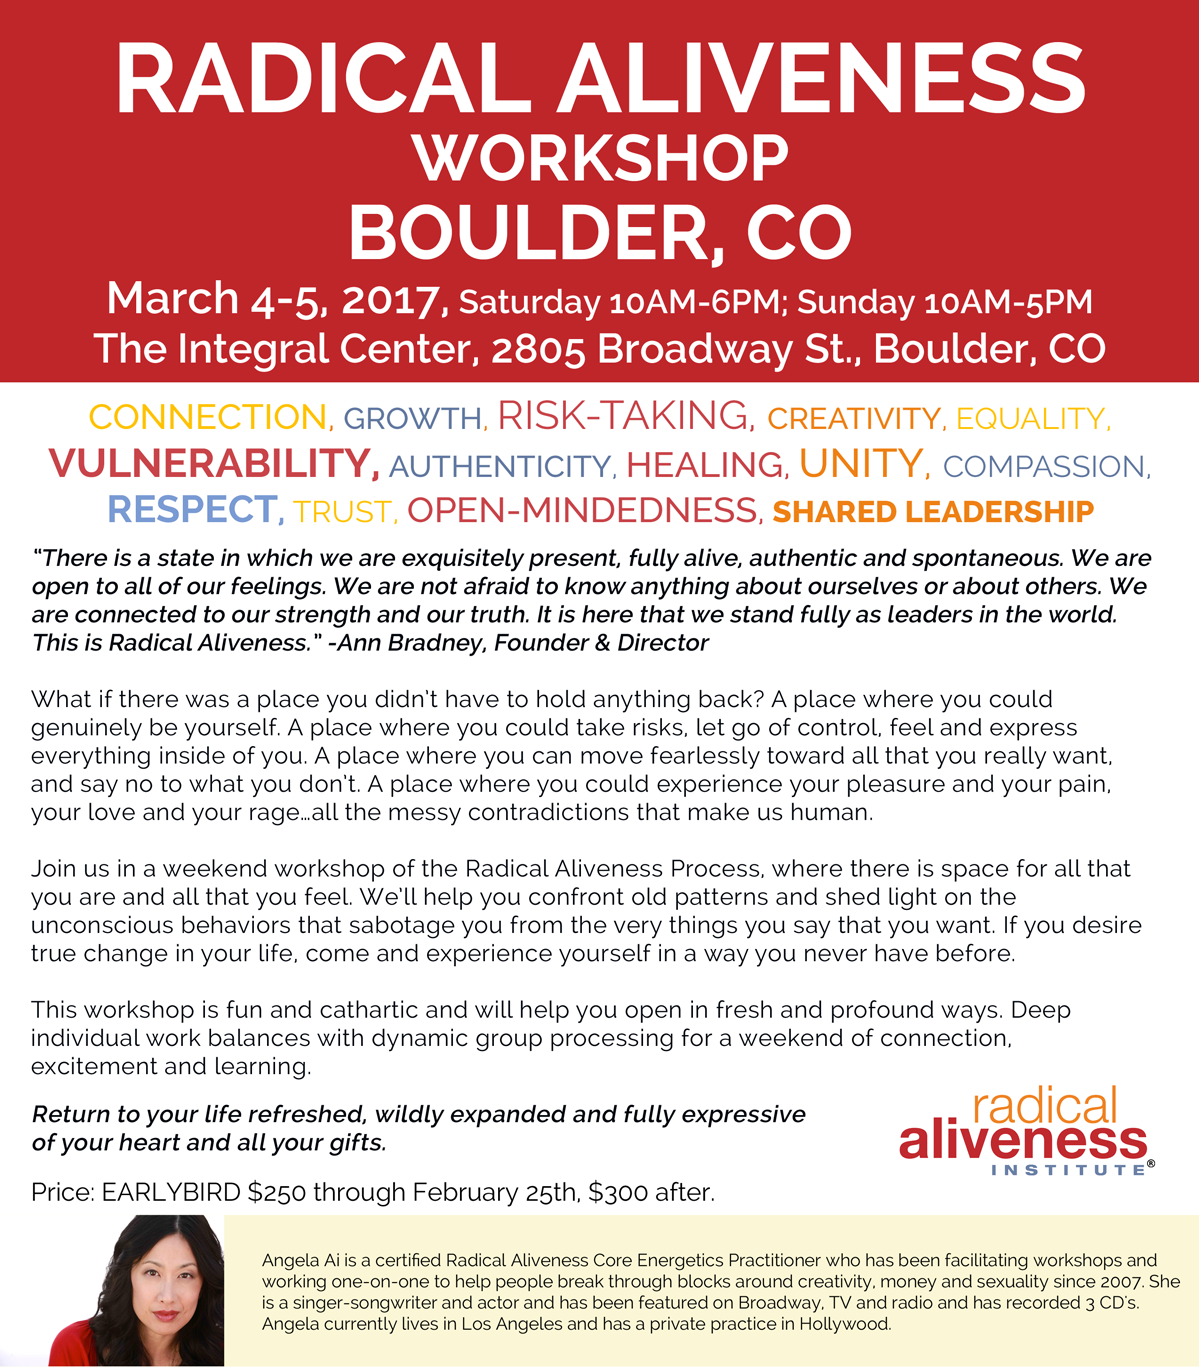 RADICAL ALIVENESS WORKSHOP BOULDER, CO with Angela Ai @ The Integral Center | Boulder | Colorado | United States